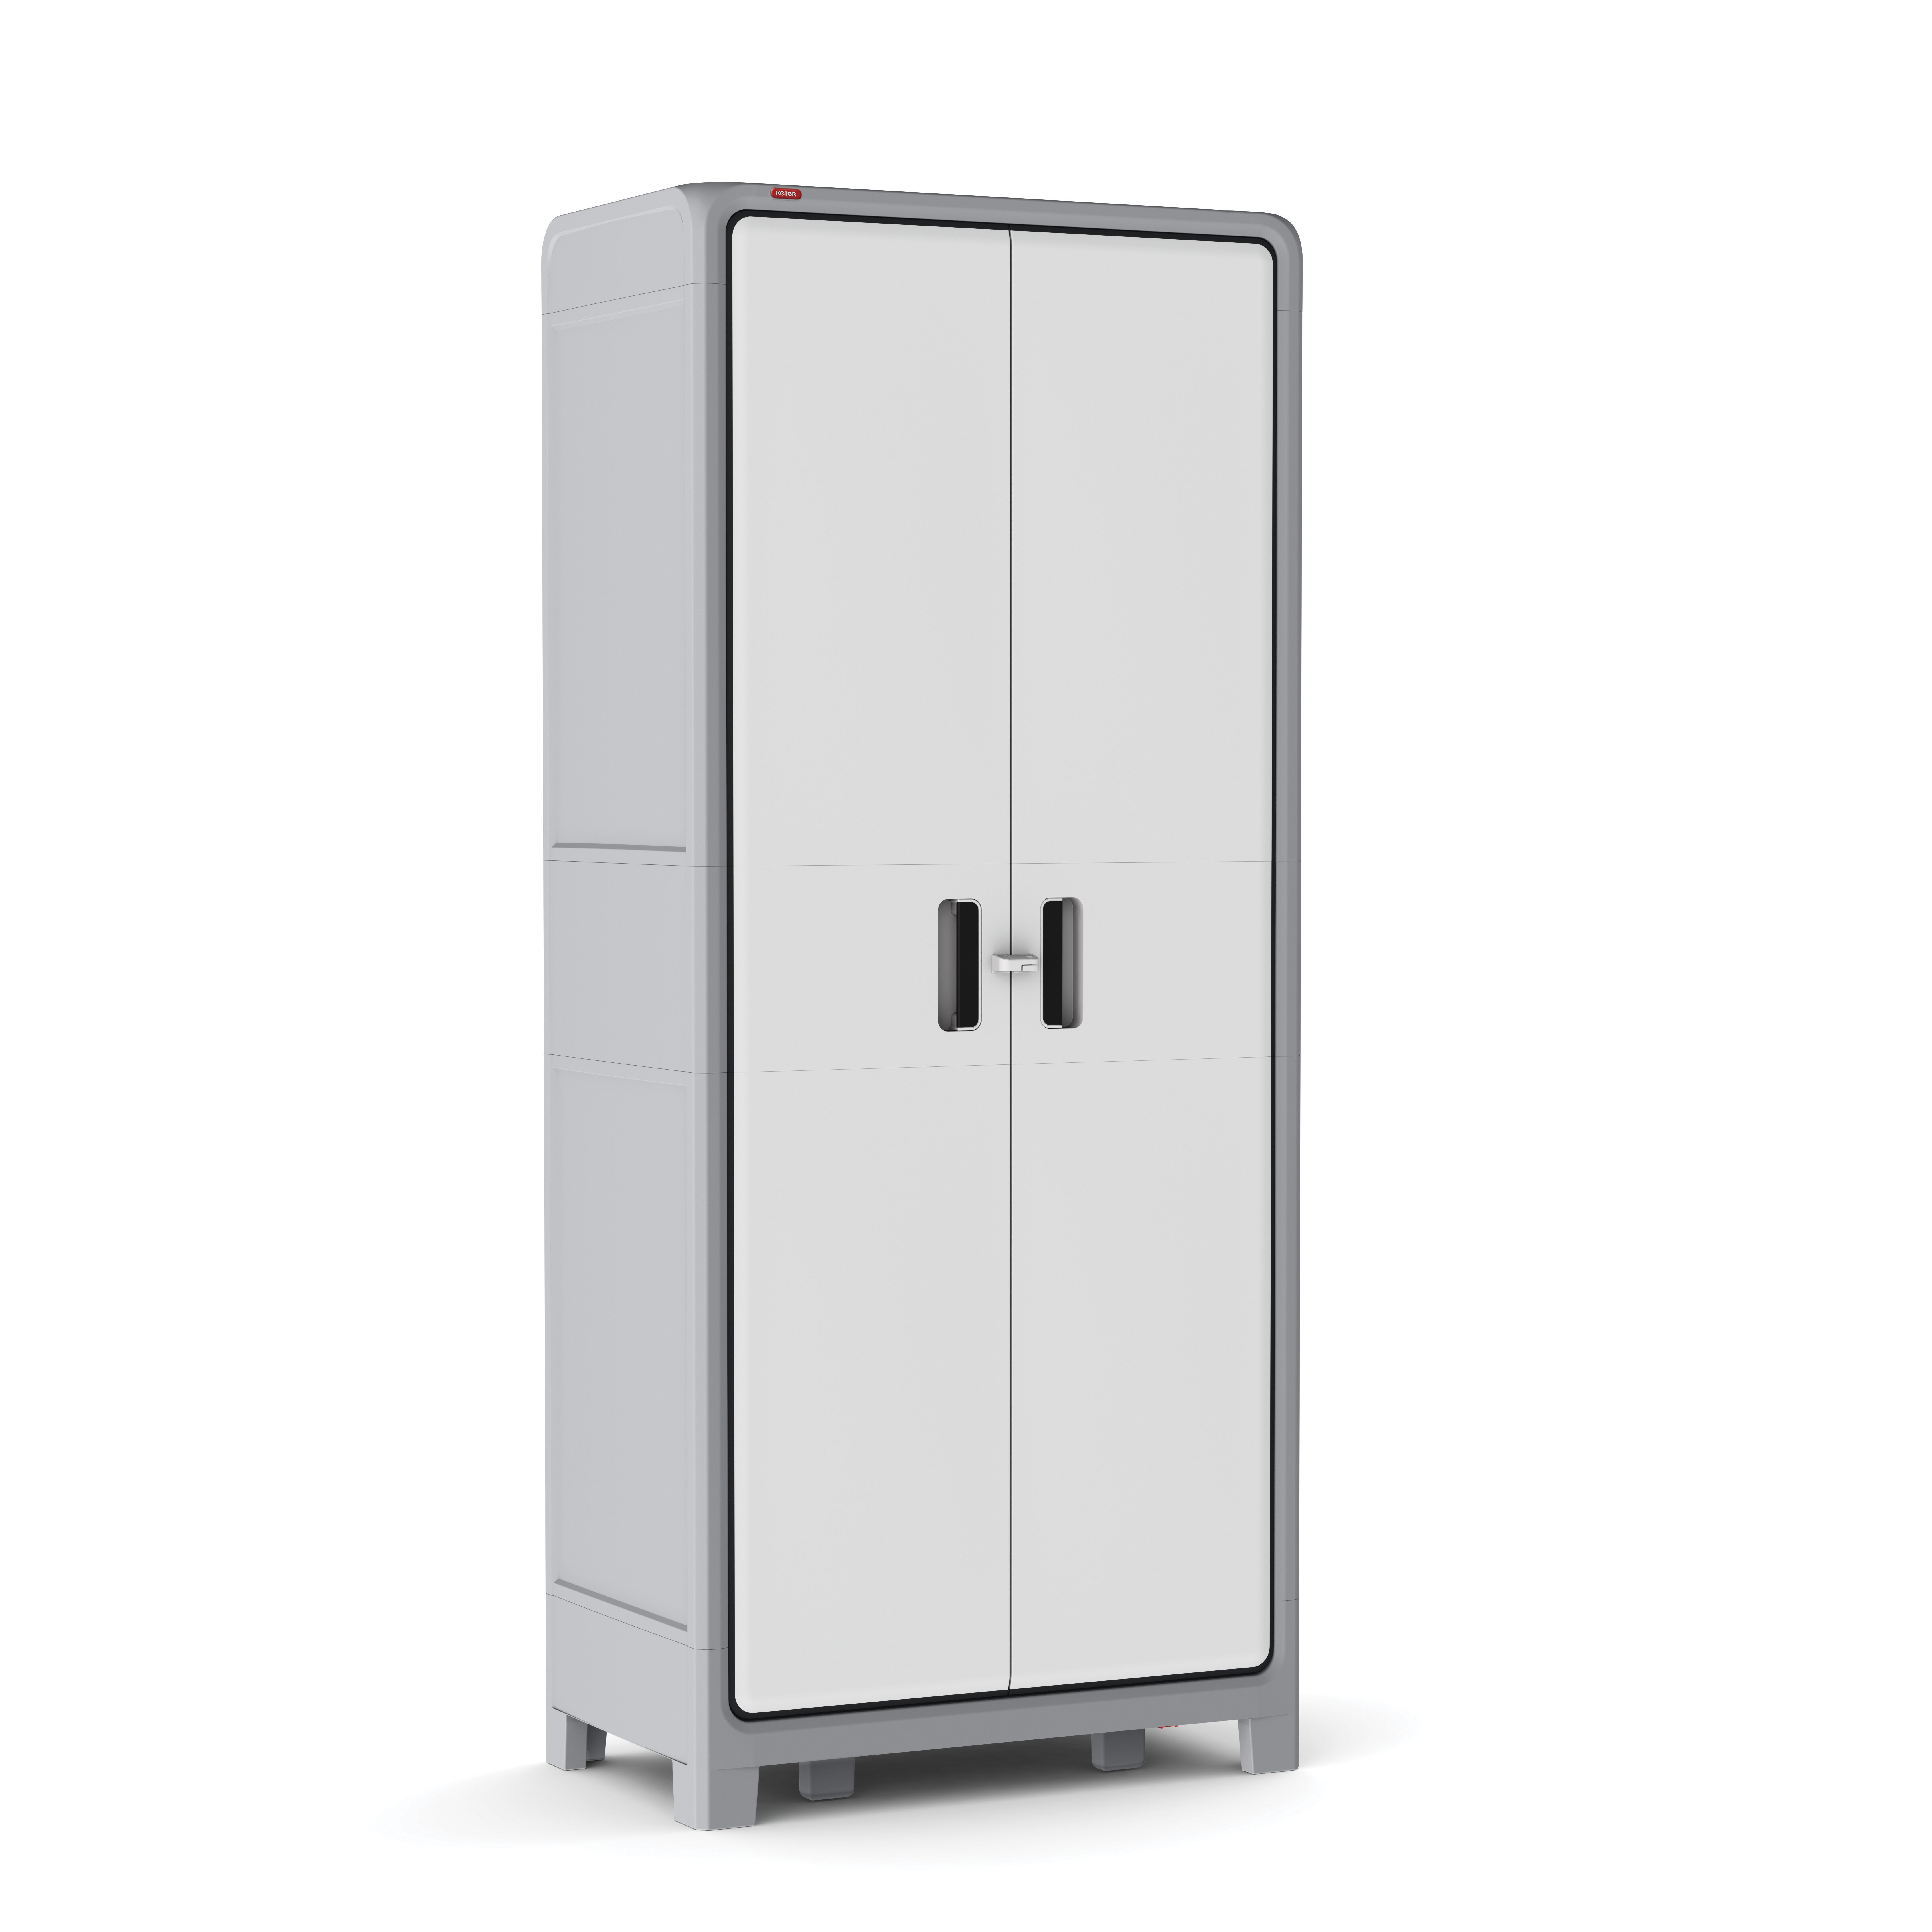 Heavy Duty Storage Cabinets Garage Utility Cabinets Youll Love Wayfair